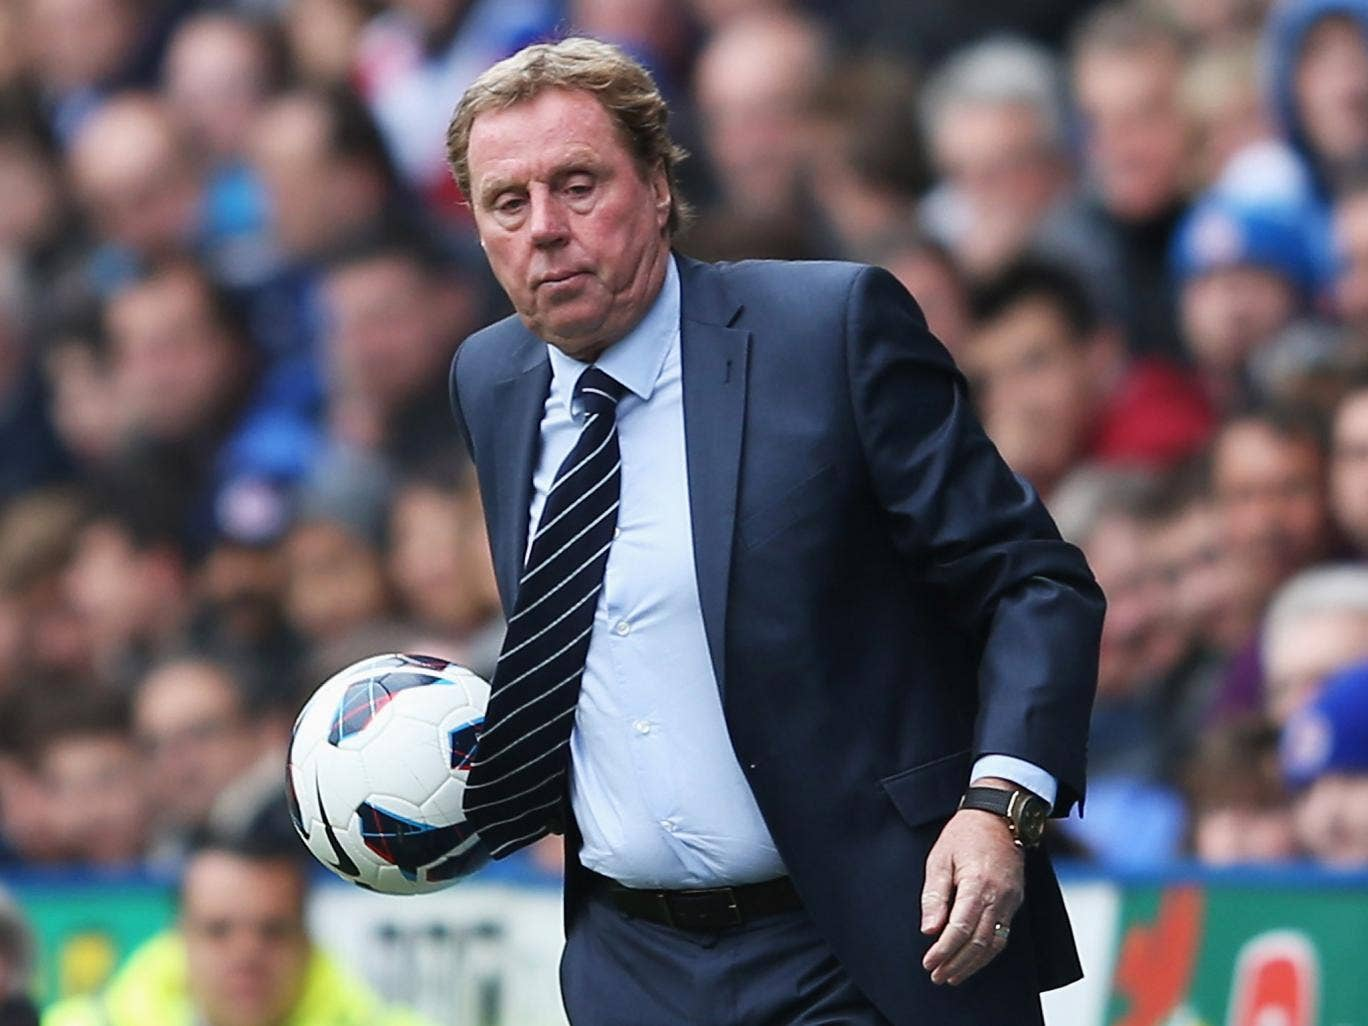 Harry Redknapp will stay at QPR and try to rebuild his squad